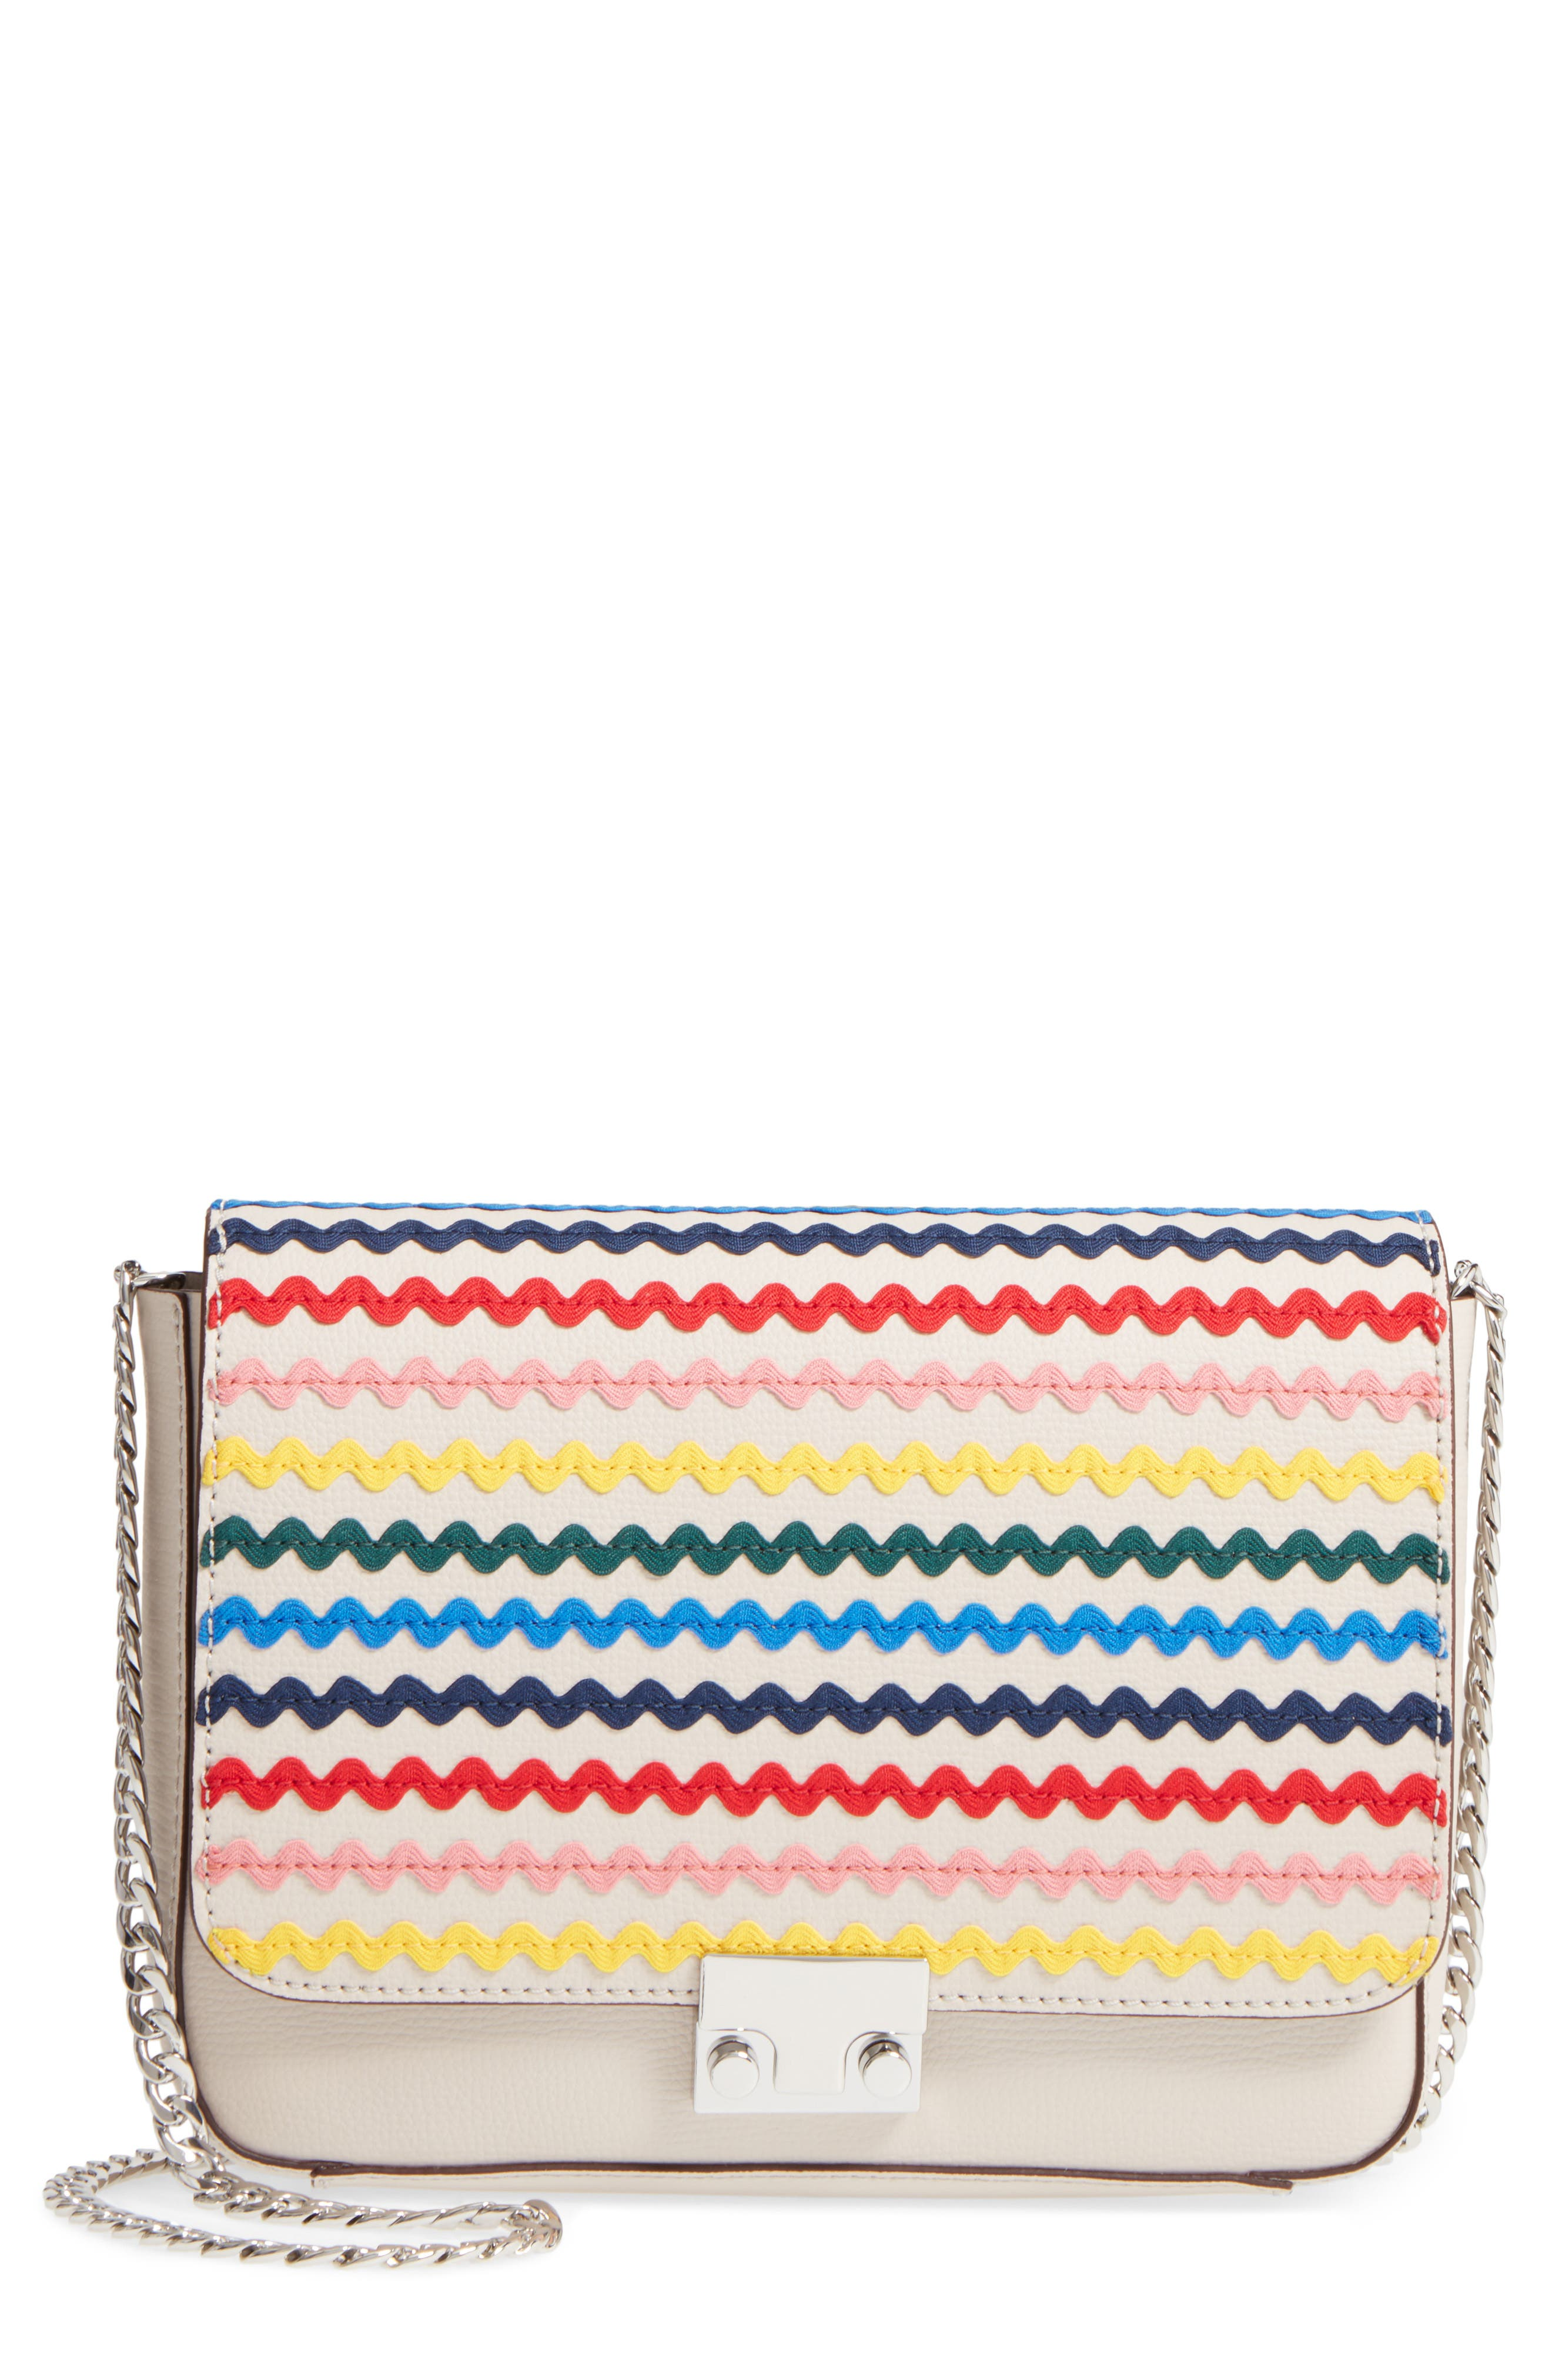 Lock Leather Flap Clutch/Shoulder Bag,                         Main,                         color, Stone/ Rainbow